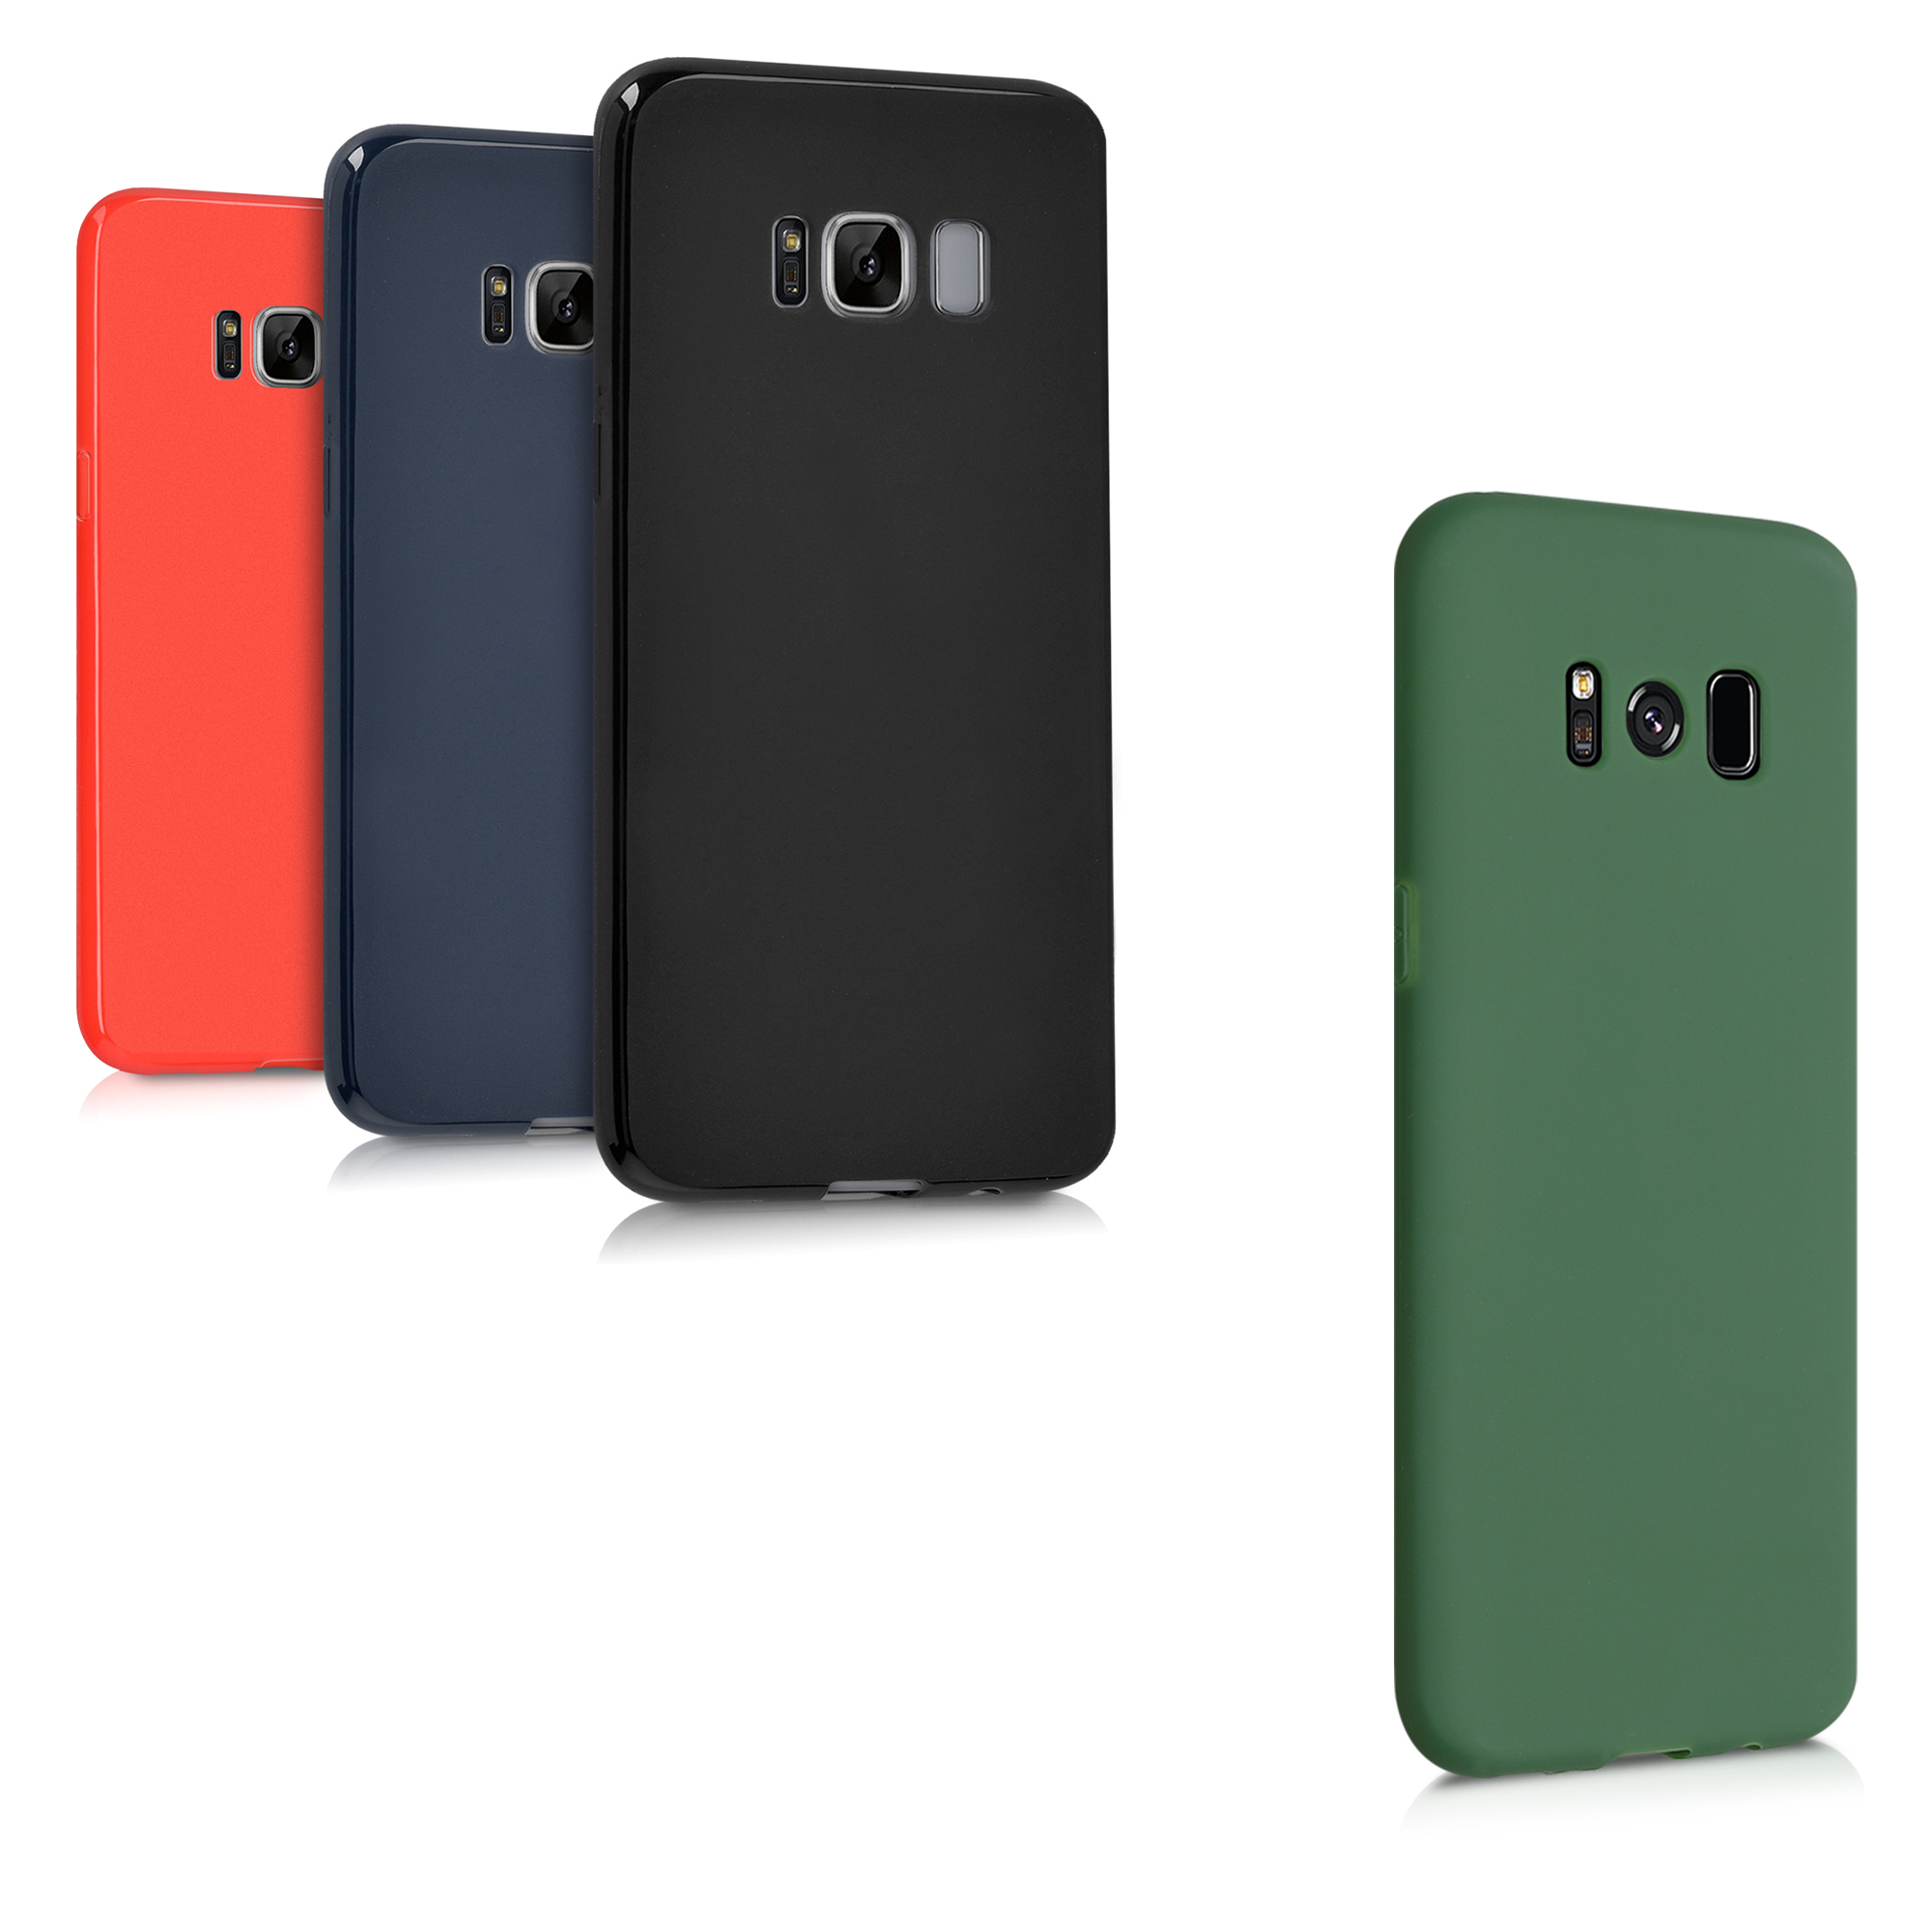 h lle f r samsung galaxy s8 handyh lle handy case cover smartphone backcover ebay. Black Bedroom Furniture Sets. Home Design Ideas